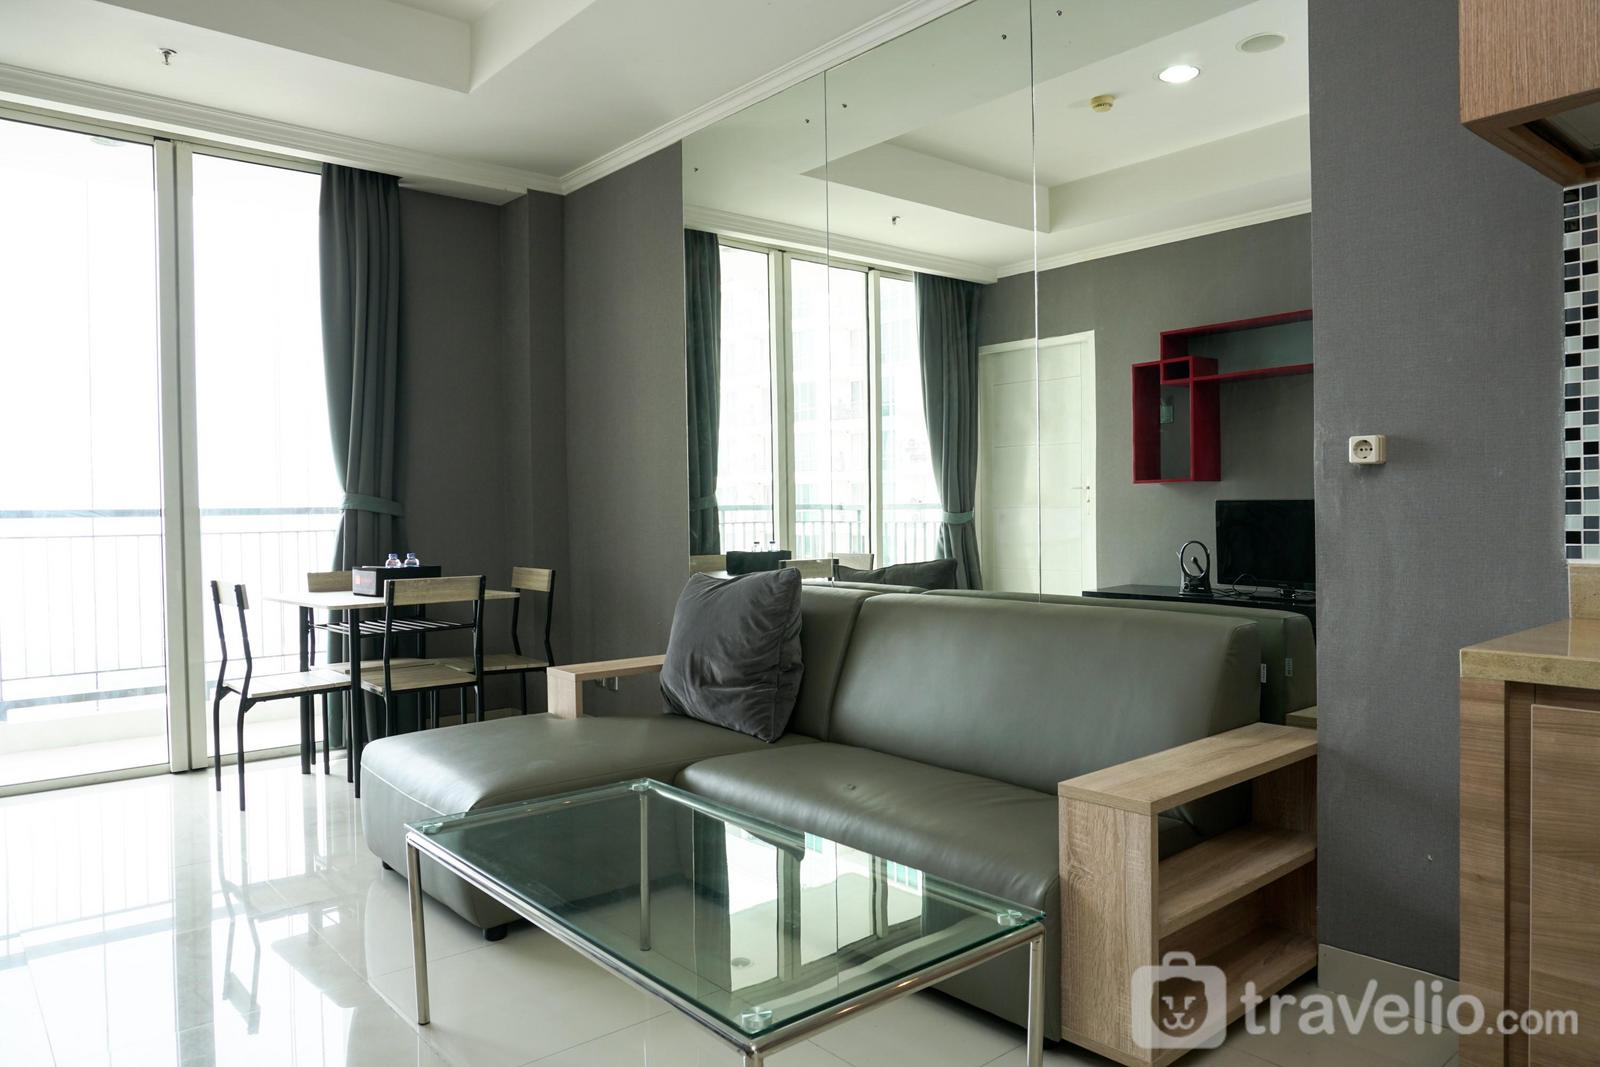 Ancol Mansion  - 1BR Apartment with City View at Ancol Mansion By Travelio